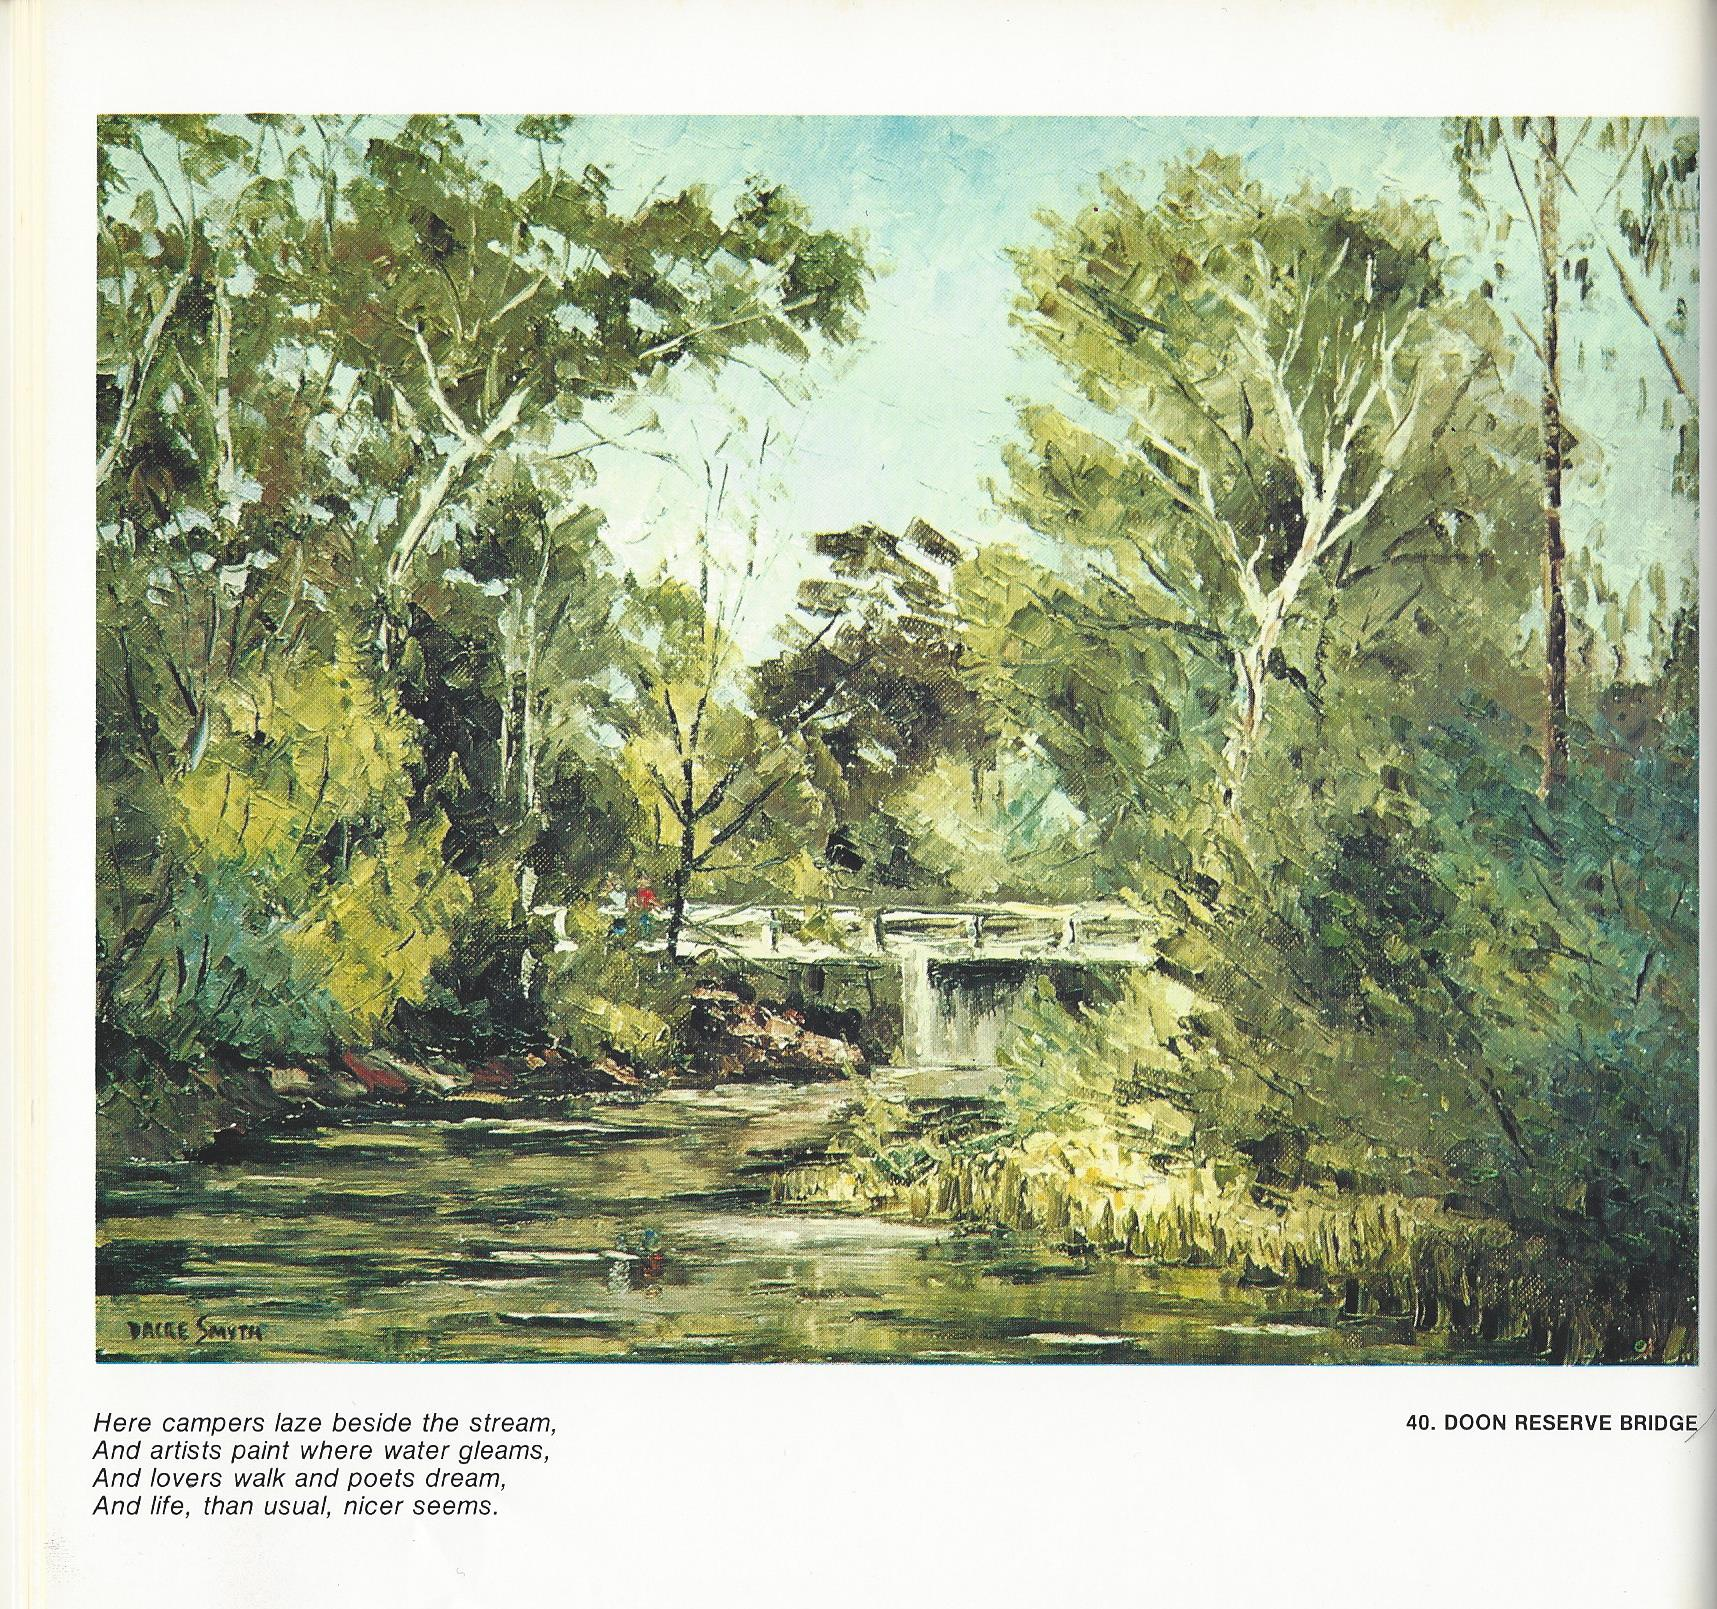 40. Doon Reserve Bridge